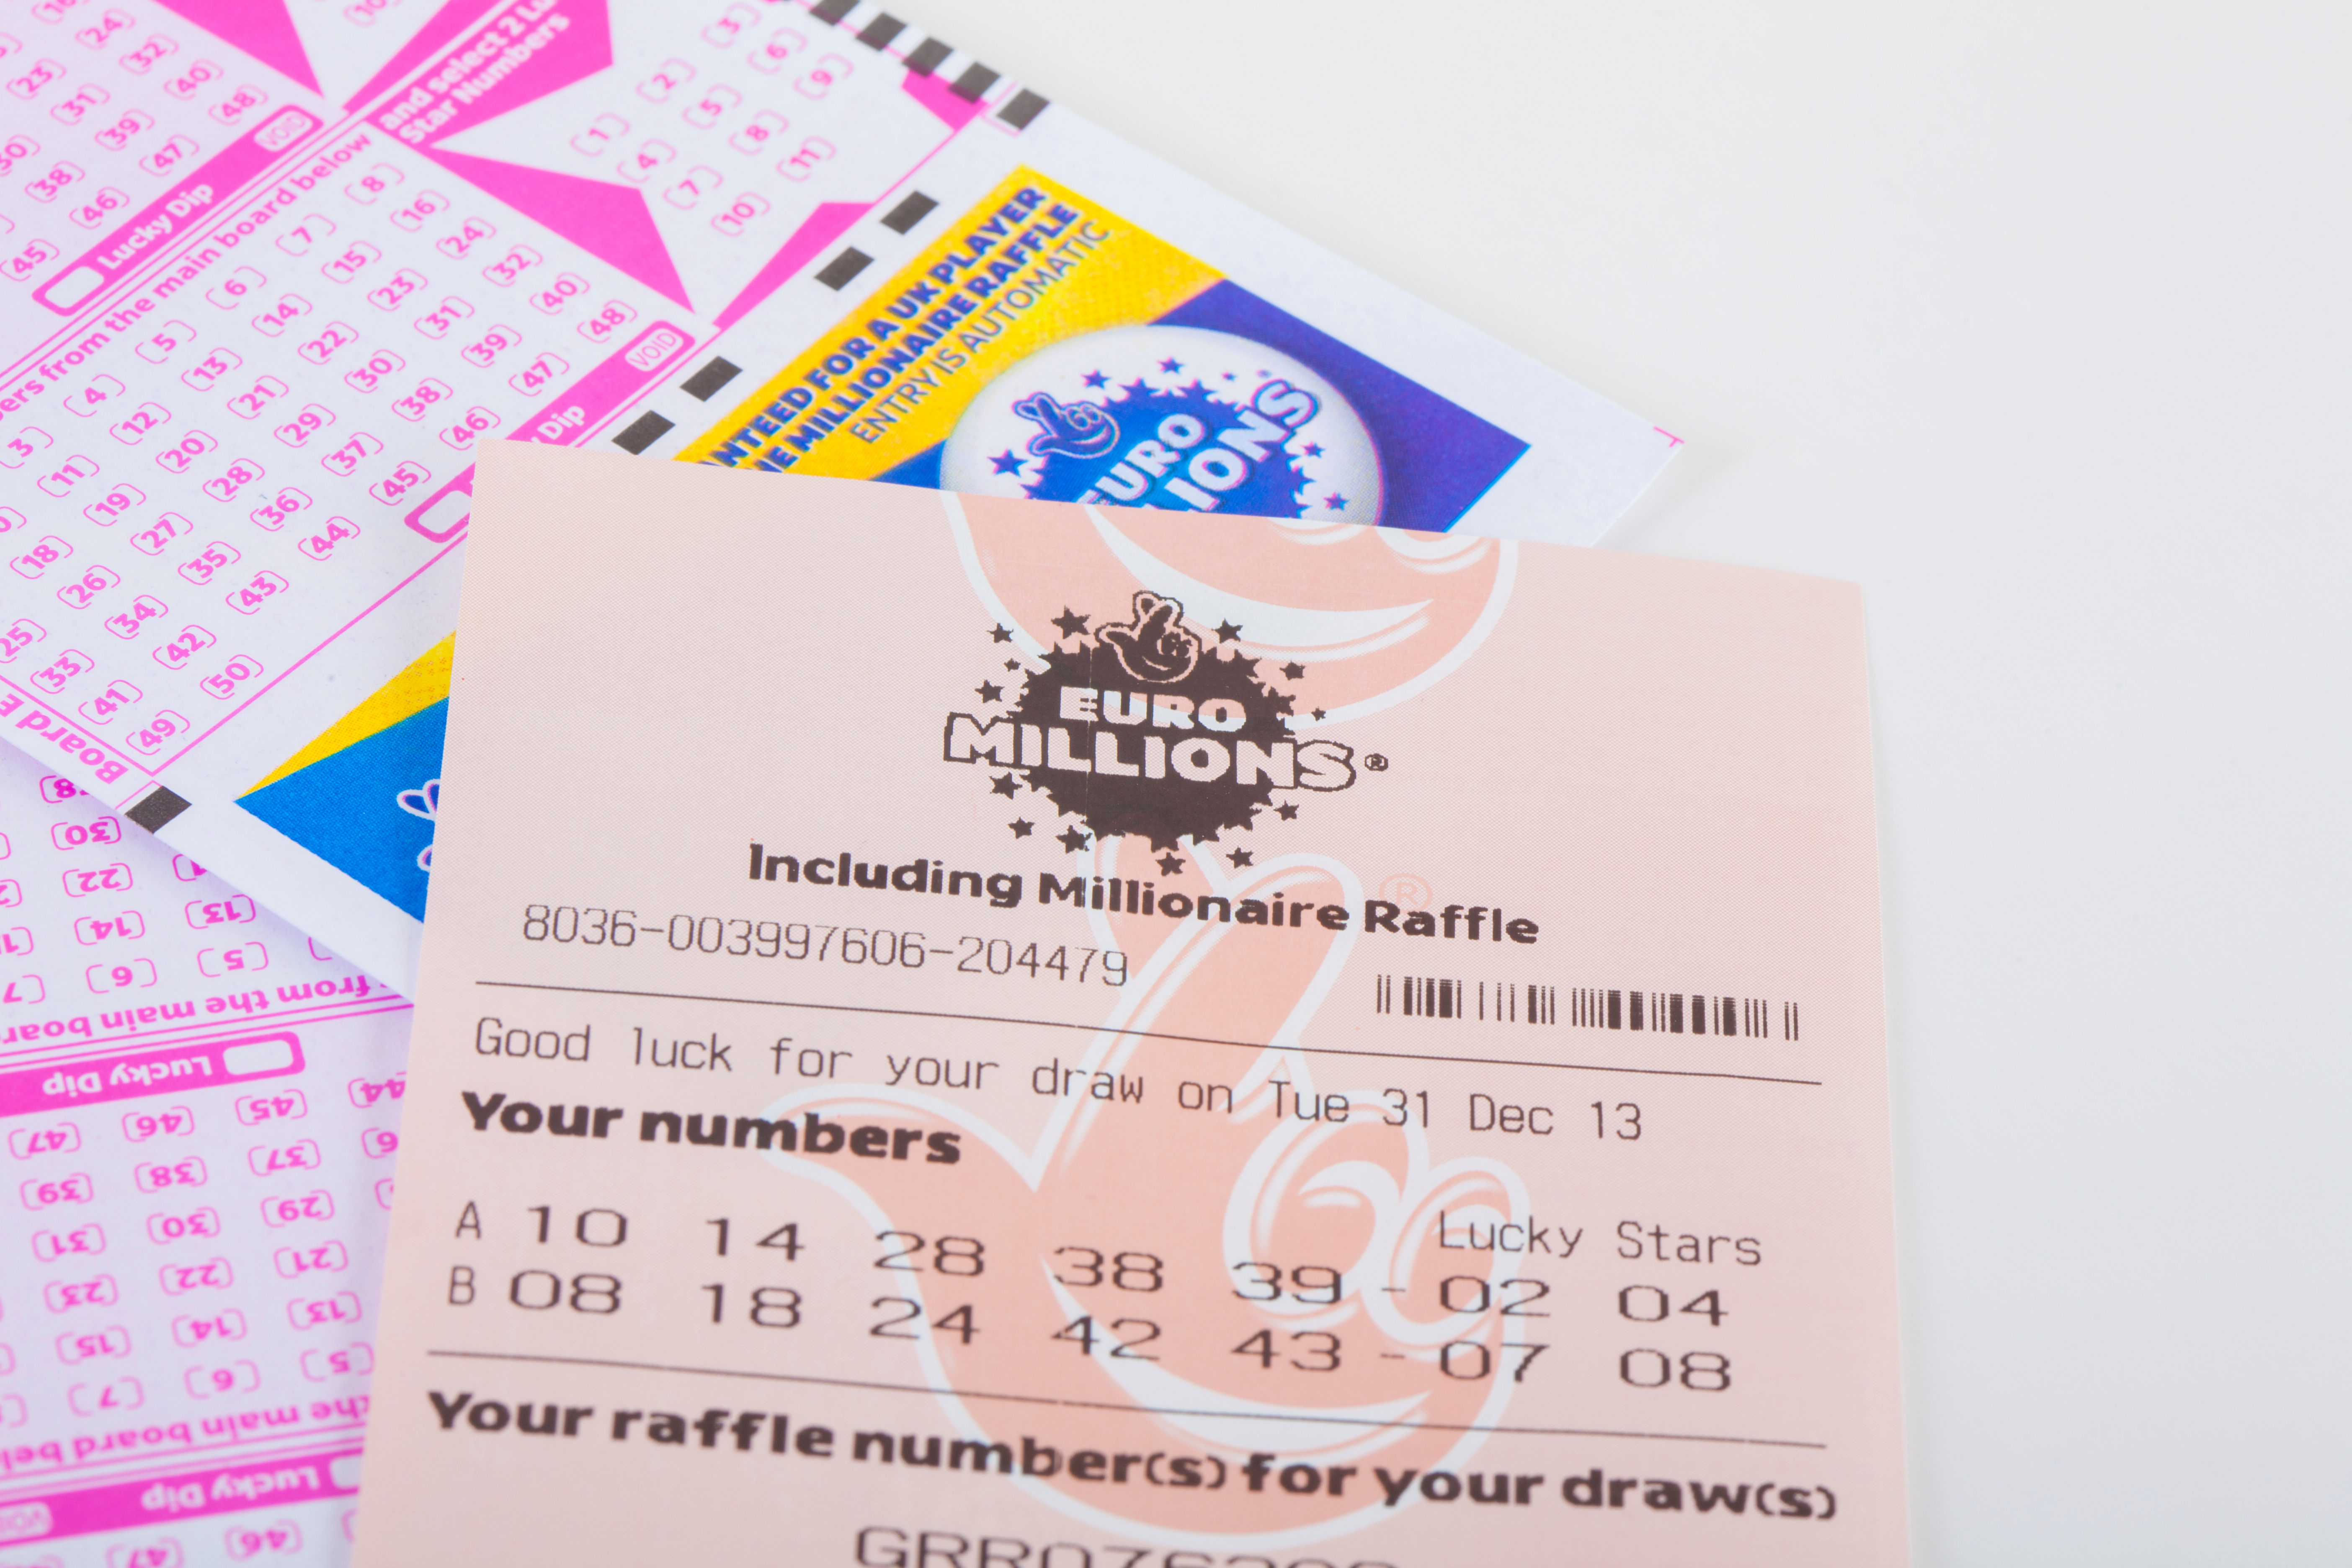 Lottery archive for millions of euros 2014 year